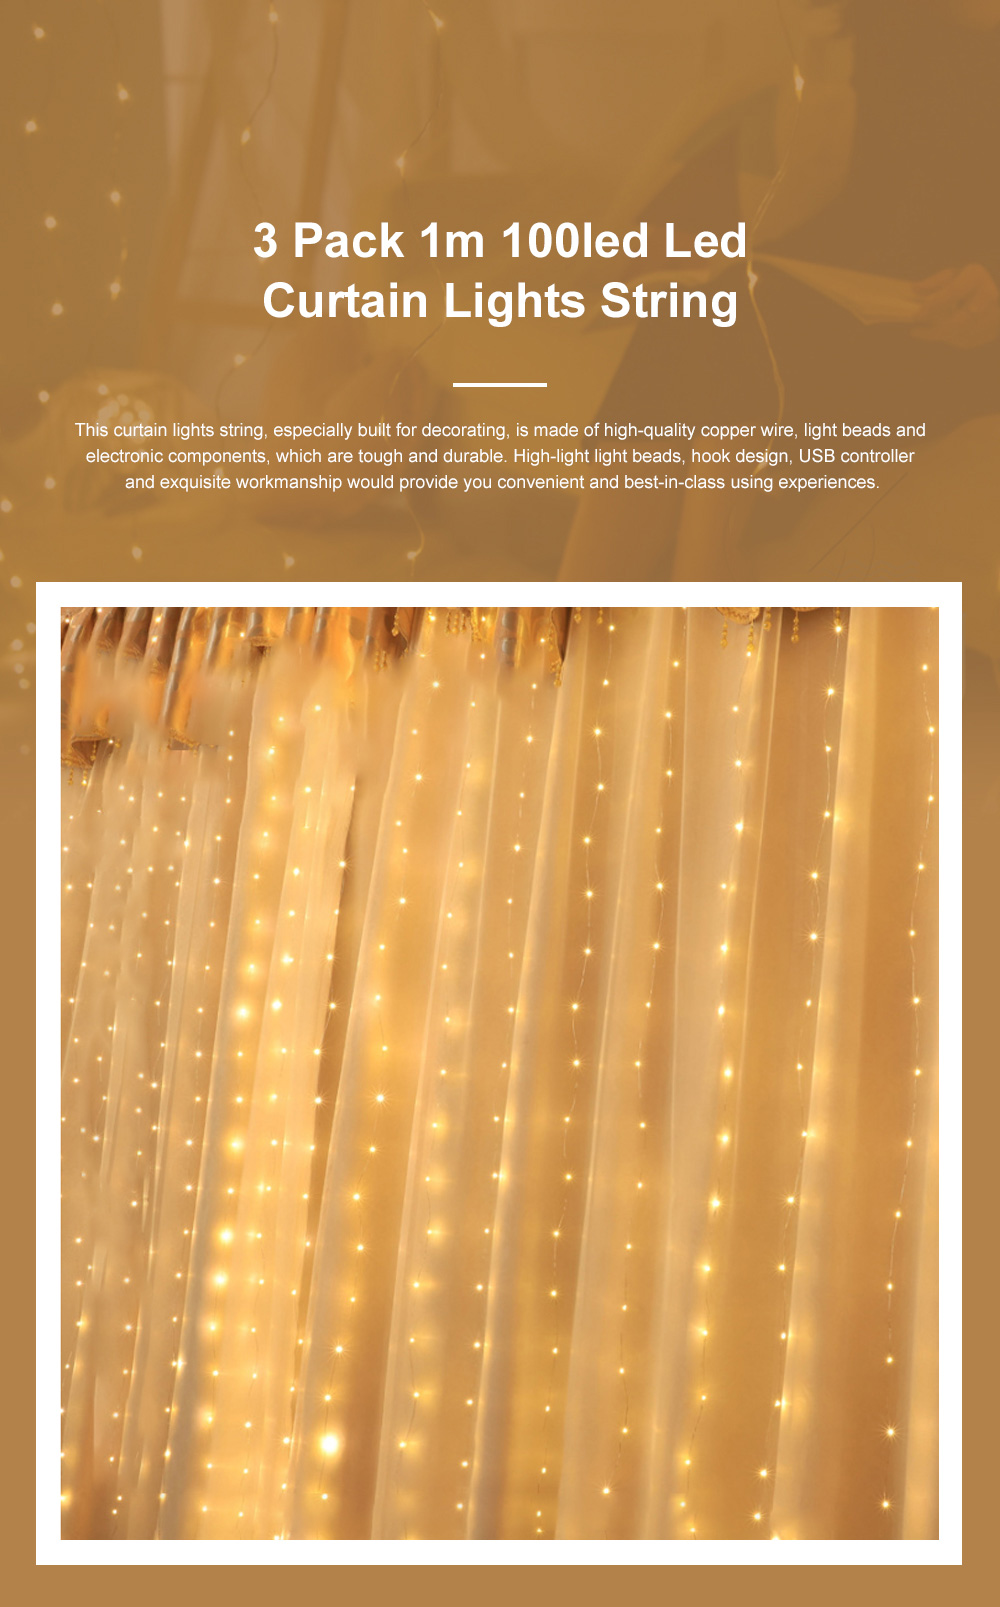 3 Pack 1m 100led Fancy Copper Wire Lights String Waterproof Curtain Lamps USB Control Room Decoration Ornament with Hook Christmas lights 0